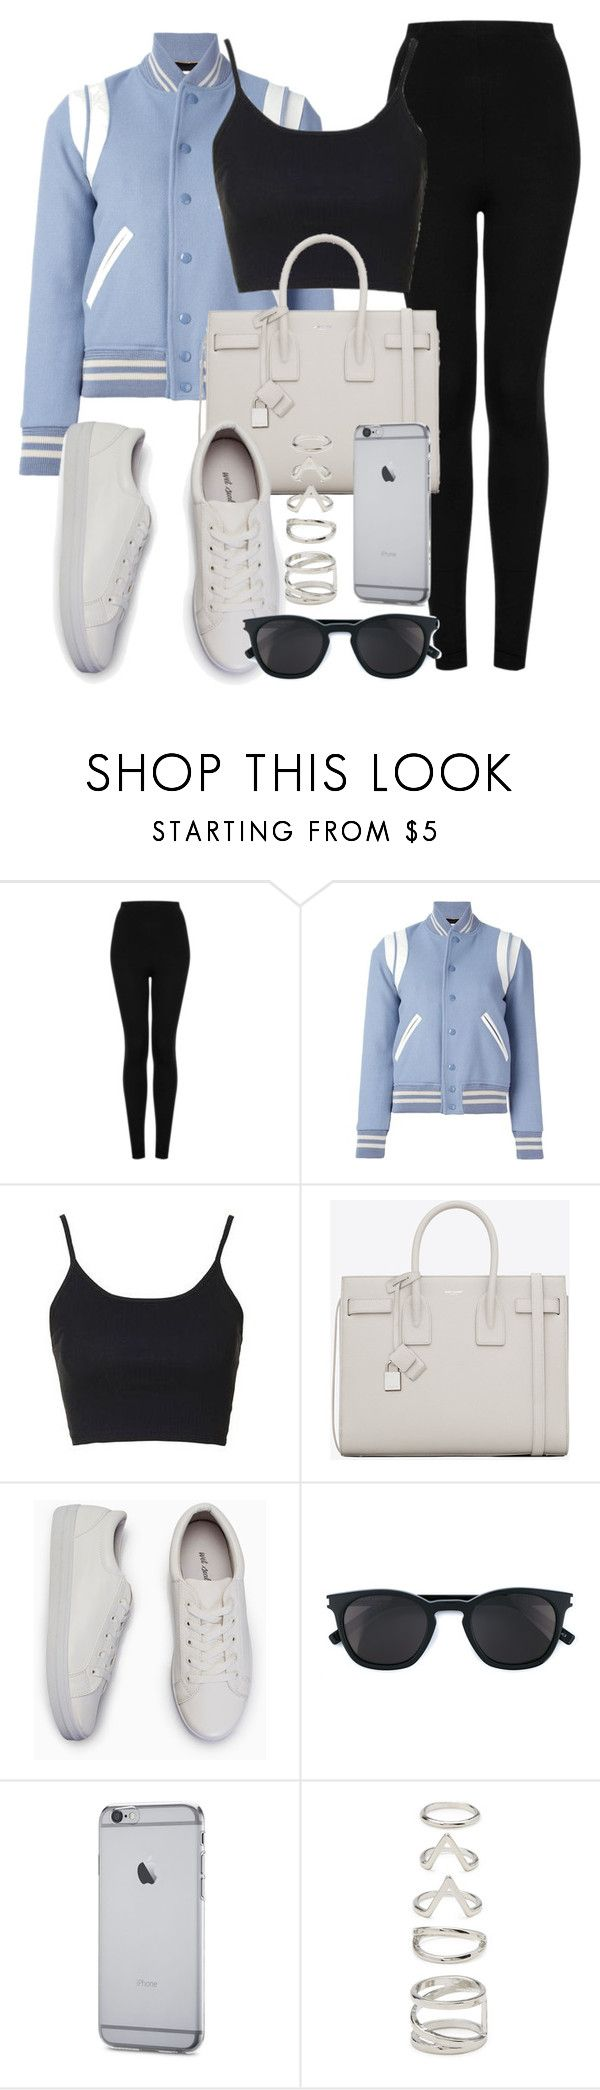 """Untitled #12312"" by vany-alvarado ❤ liked on Polyvore featuring Topshop, Yves Saint Laurent and Forever 21"